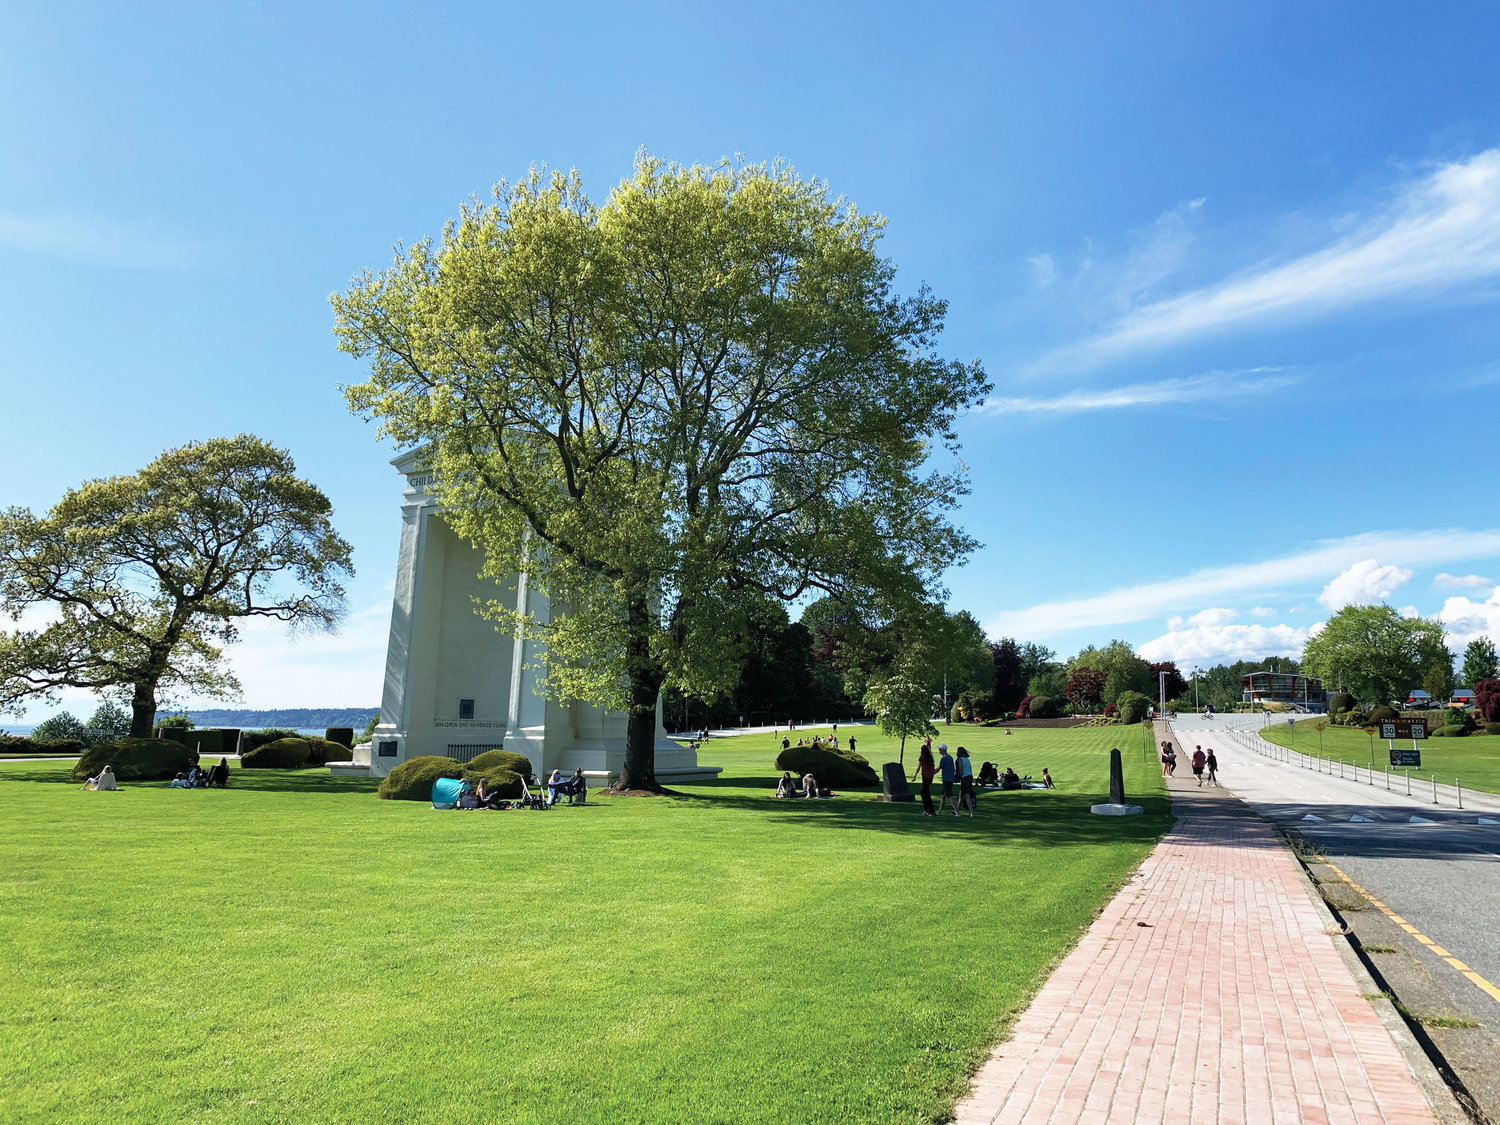 Families and friends from both sides of the US/Canada border have started gathering together at Peace Arch park since it opened on May 14 after being closed due to Covid-19.